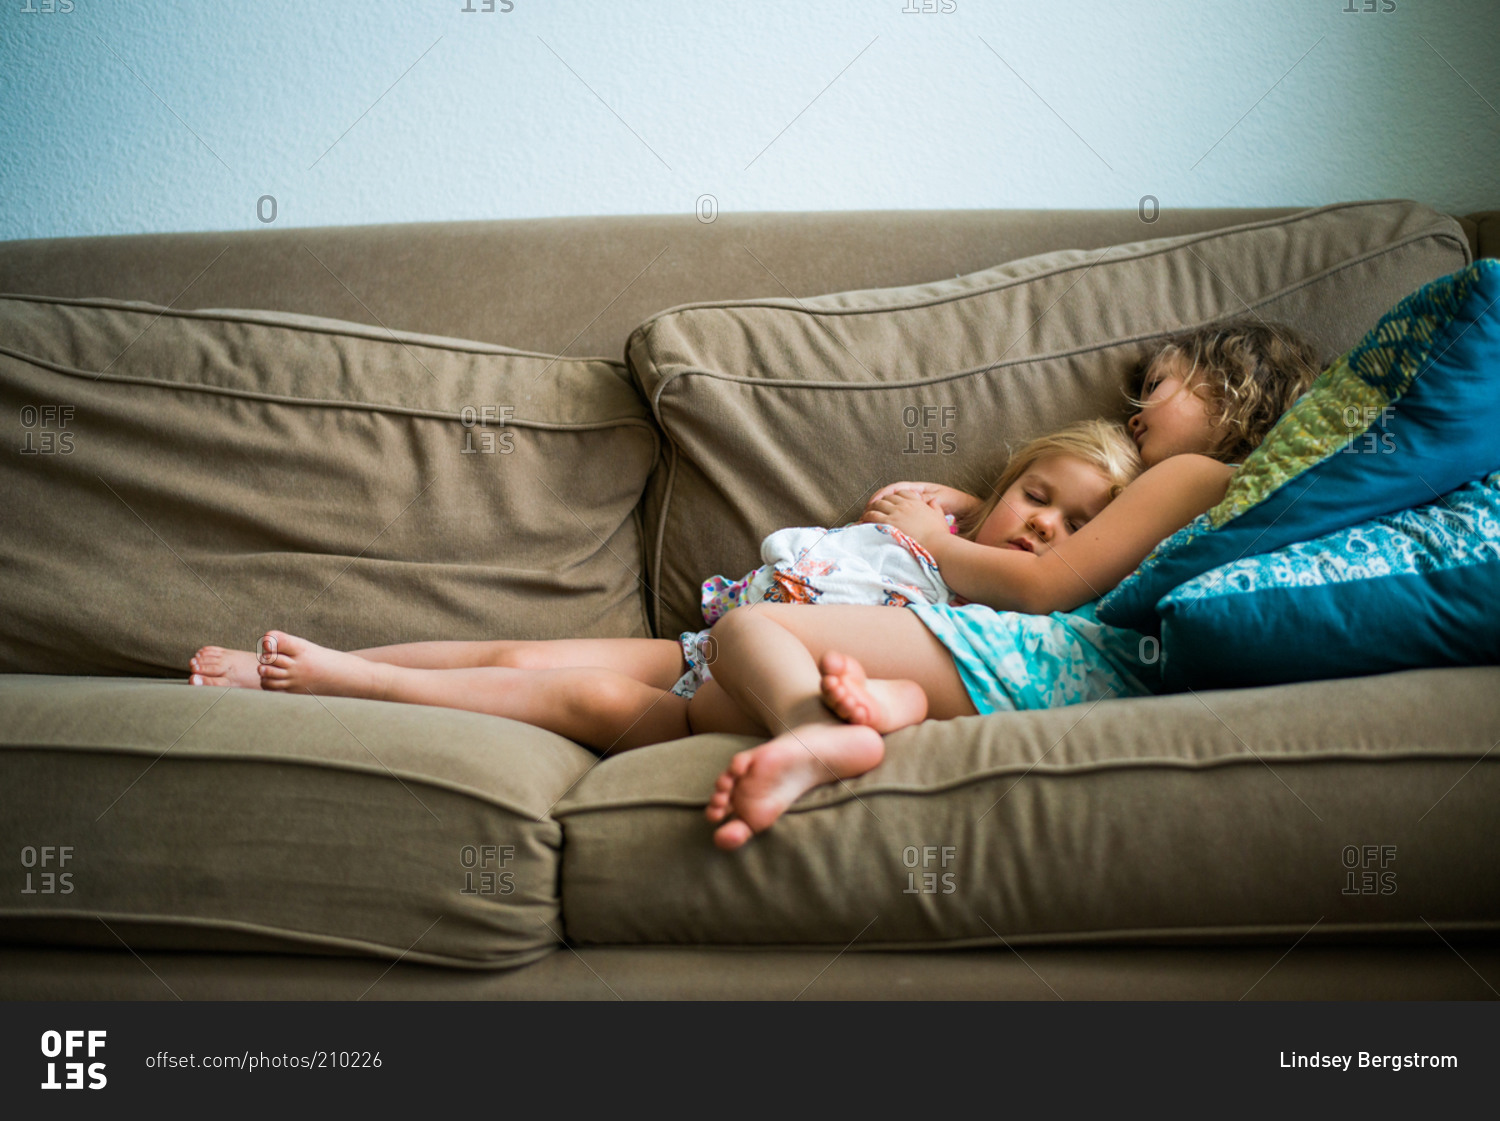 How to cuddle with a girl on the couch